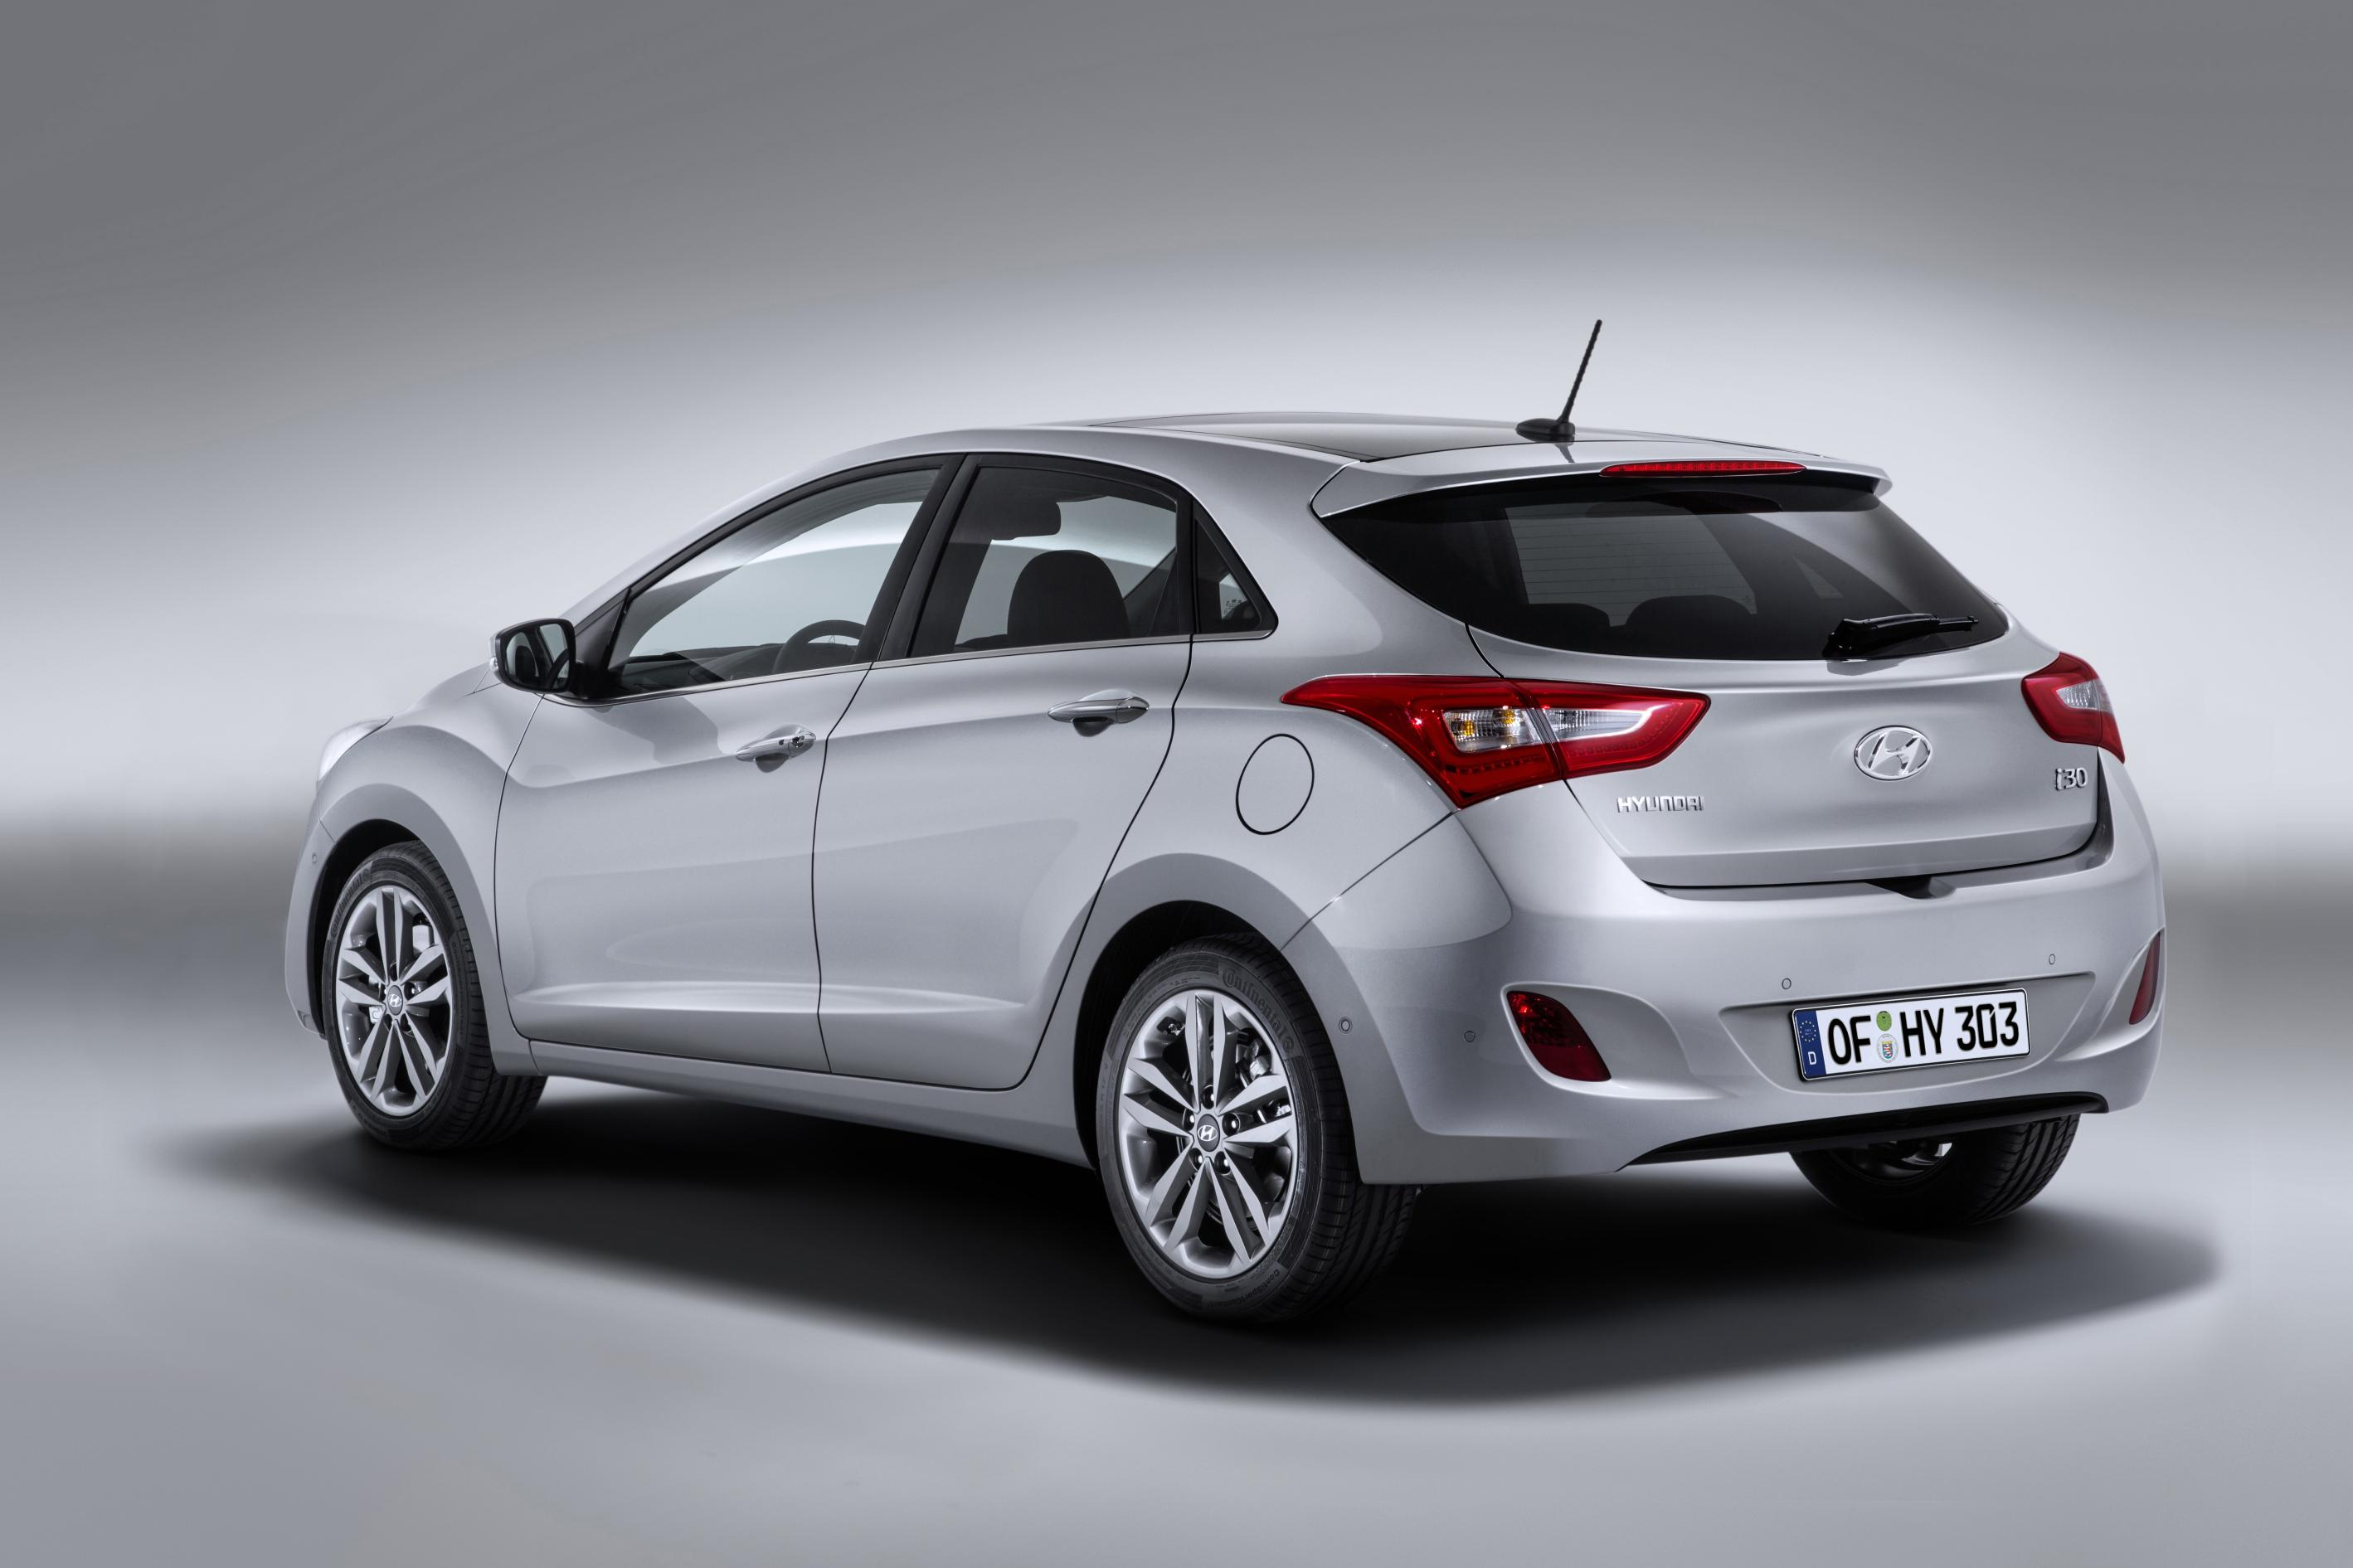 2015 Hyundai I30 Facelift Brings 7 Speed Dct To Uk Market